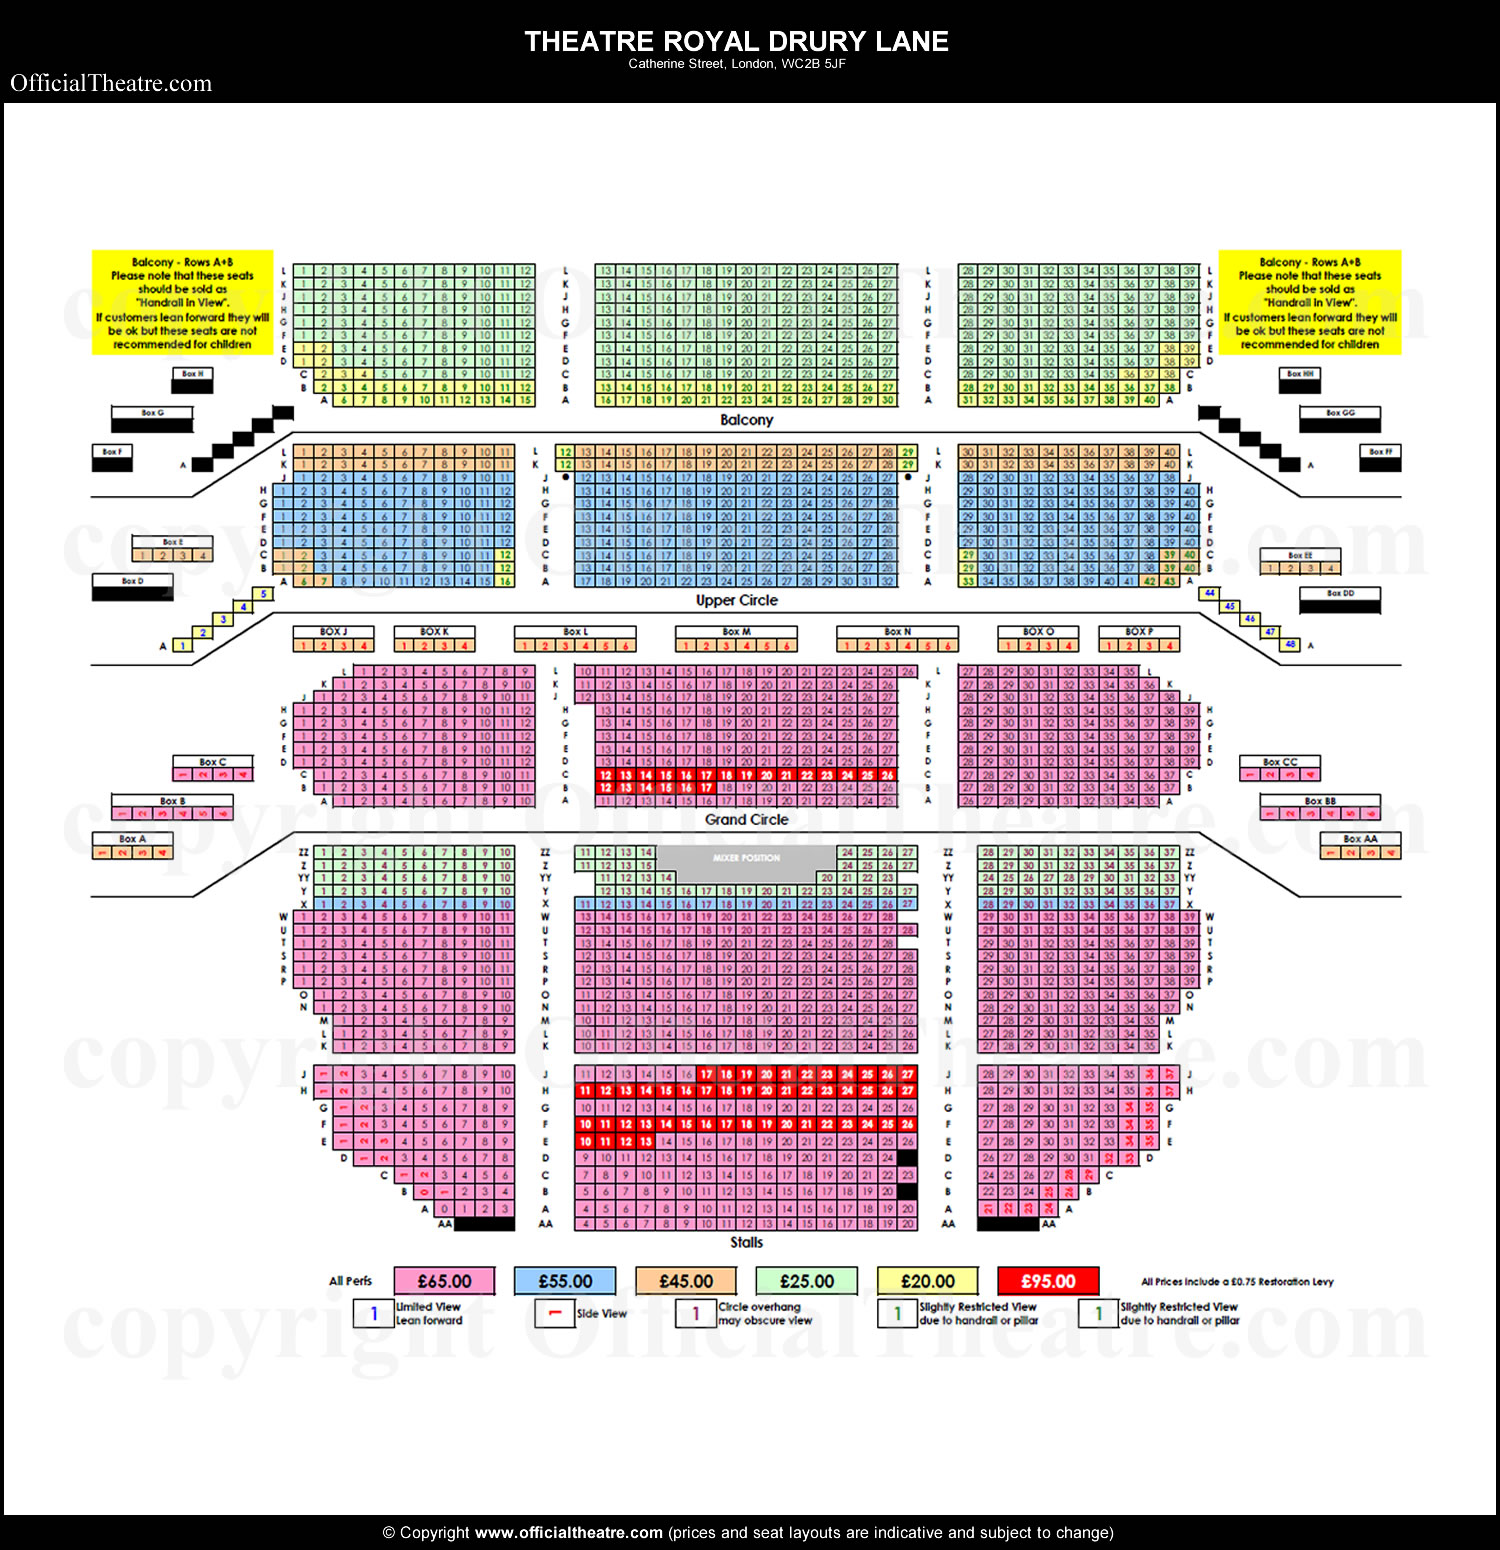 Theatre Royal Drury Lane seat prices